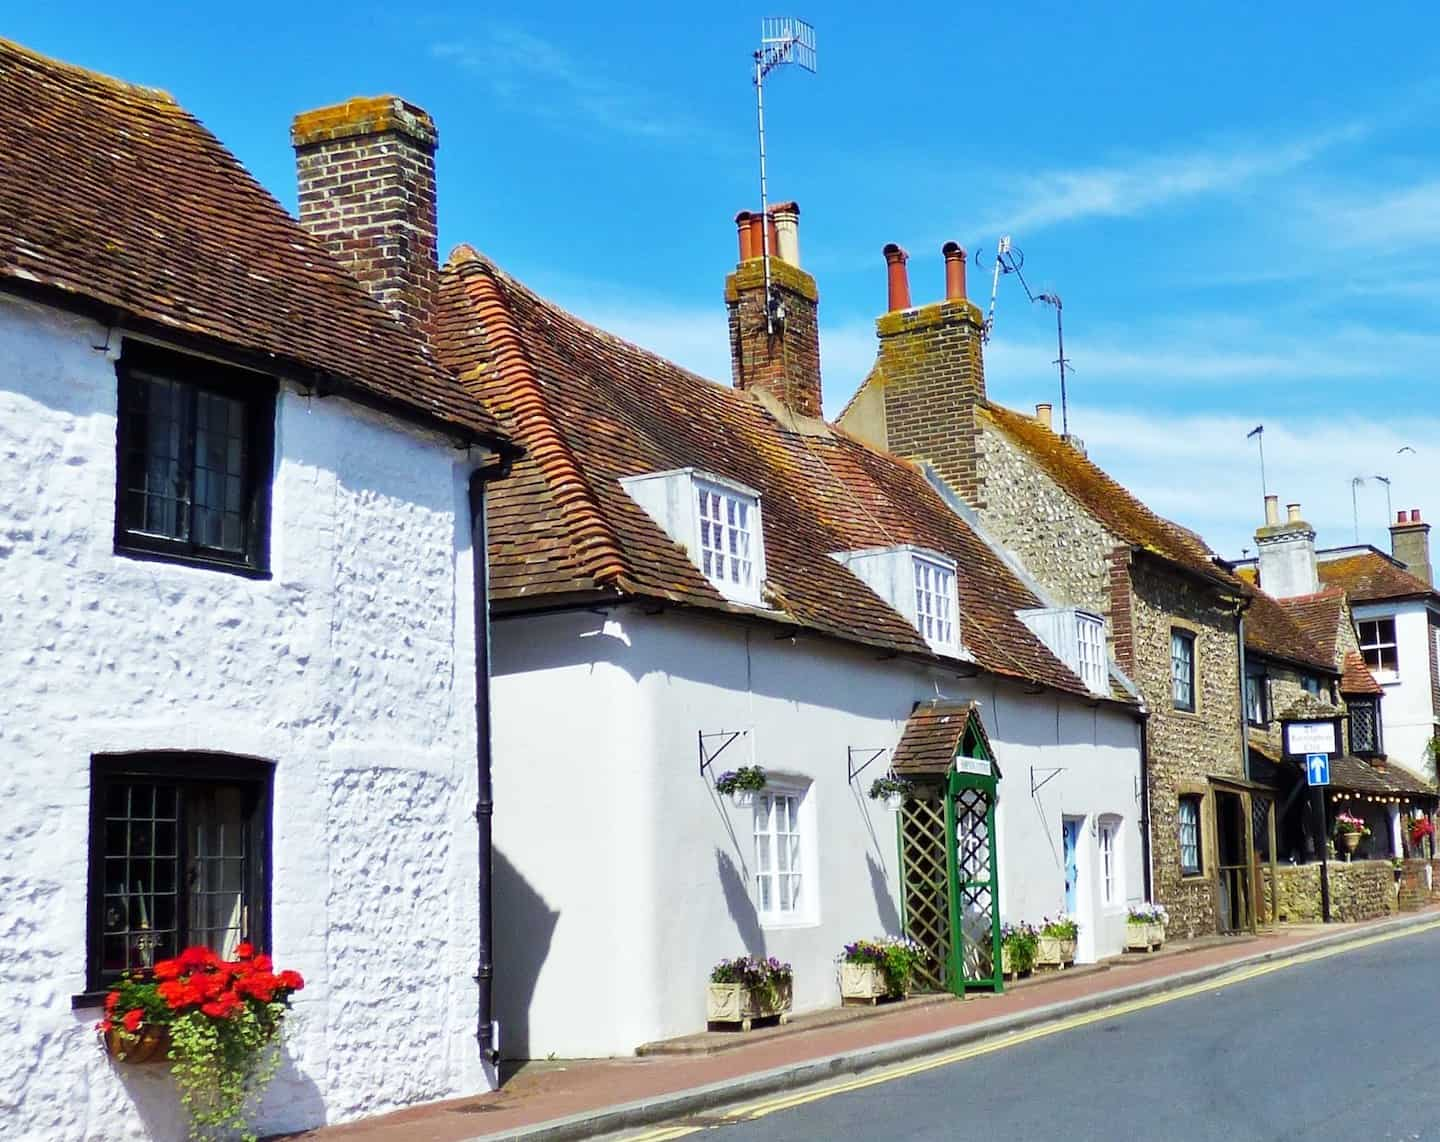 Rottingdean Village by GrassRootsGroundswell